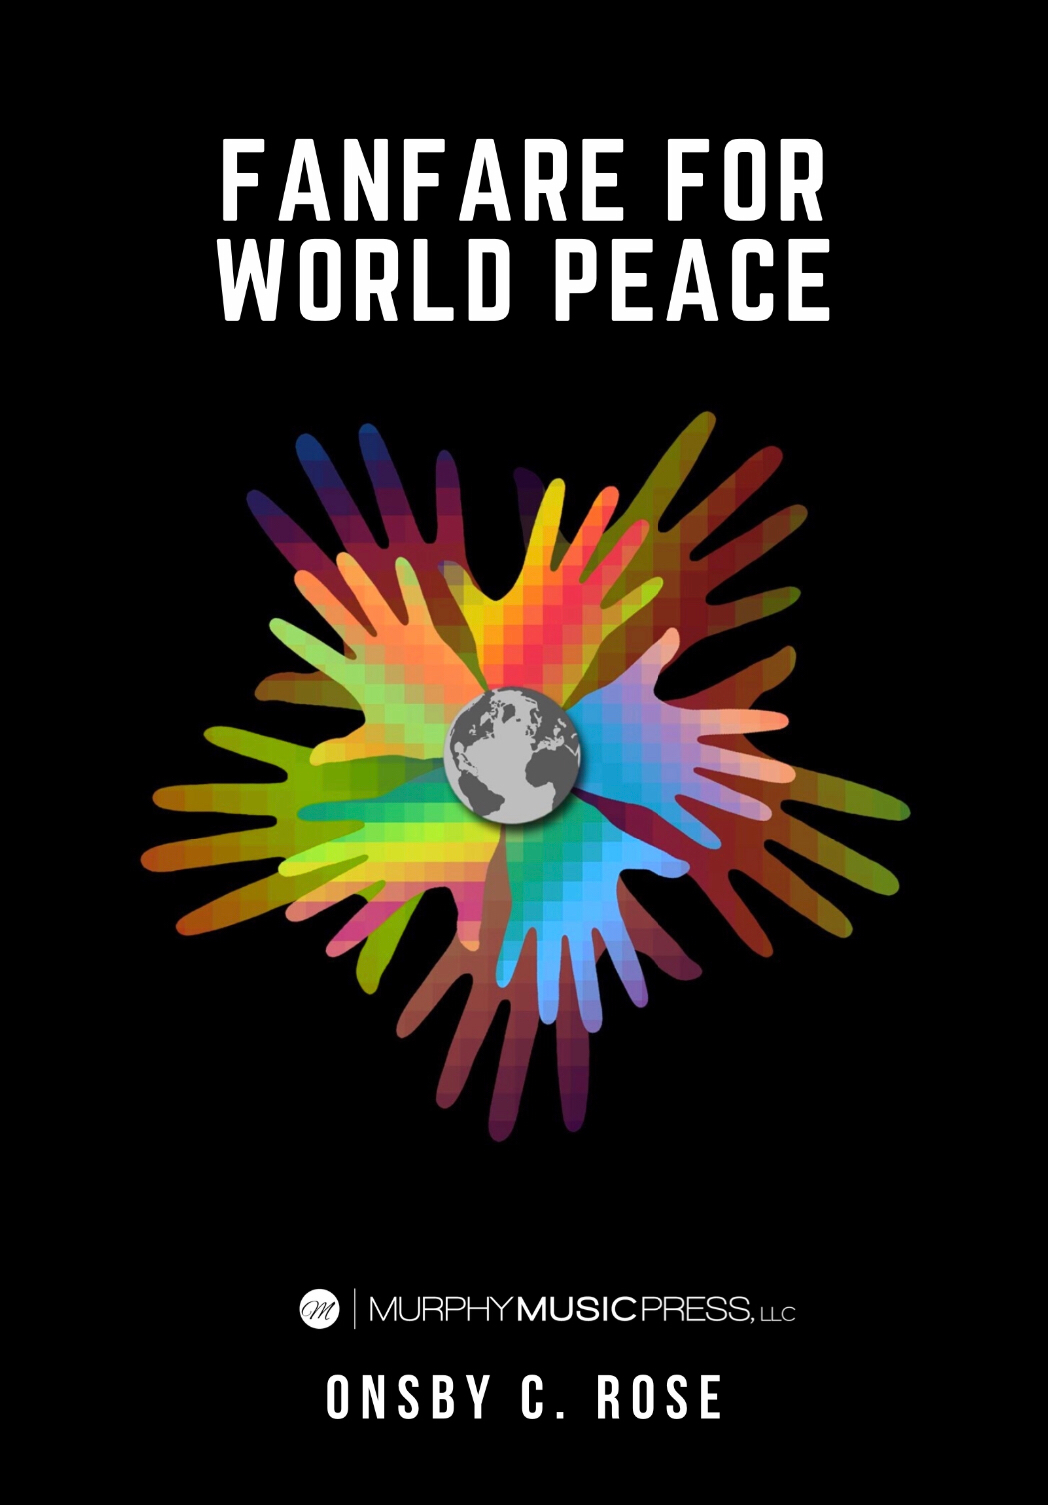 Fanfare For World Peace (Score Only) by Onsby C. Rose